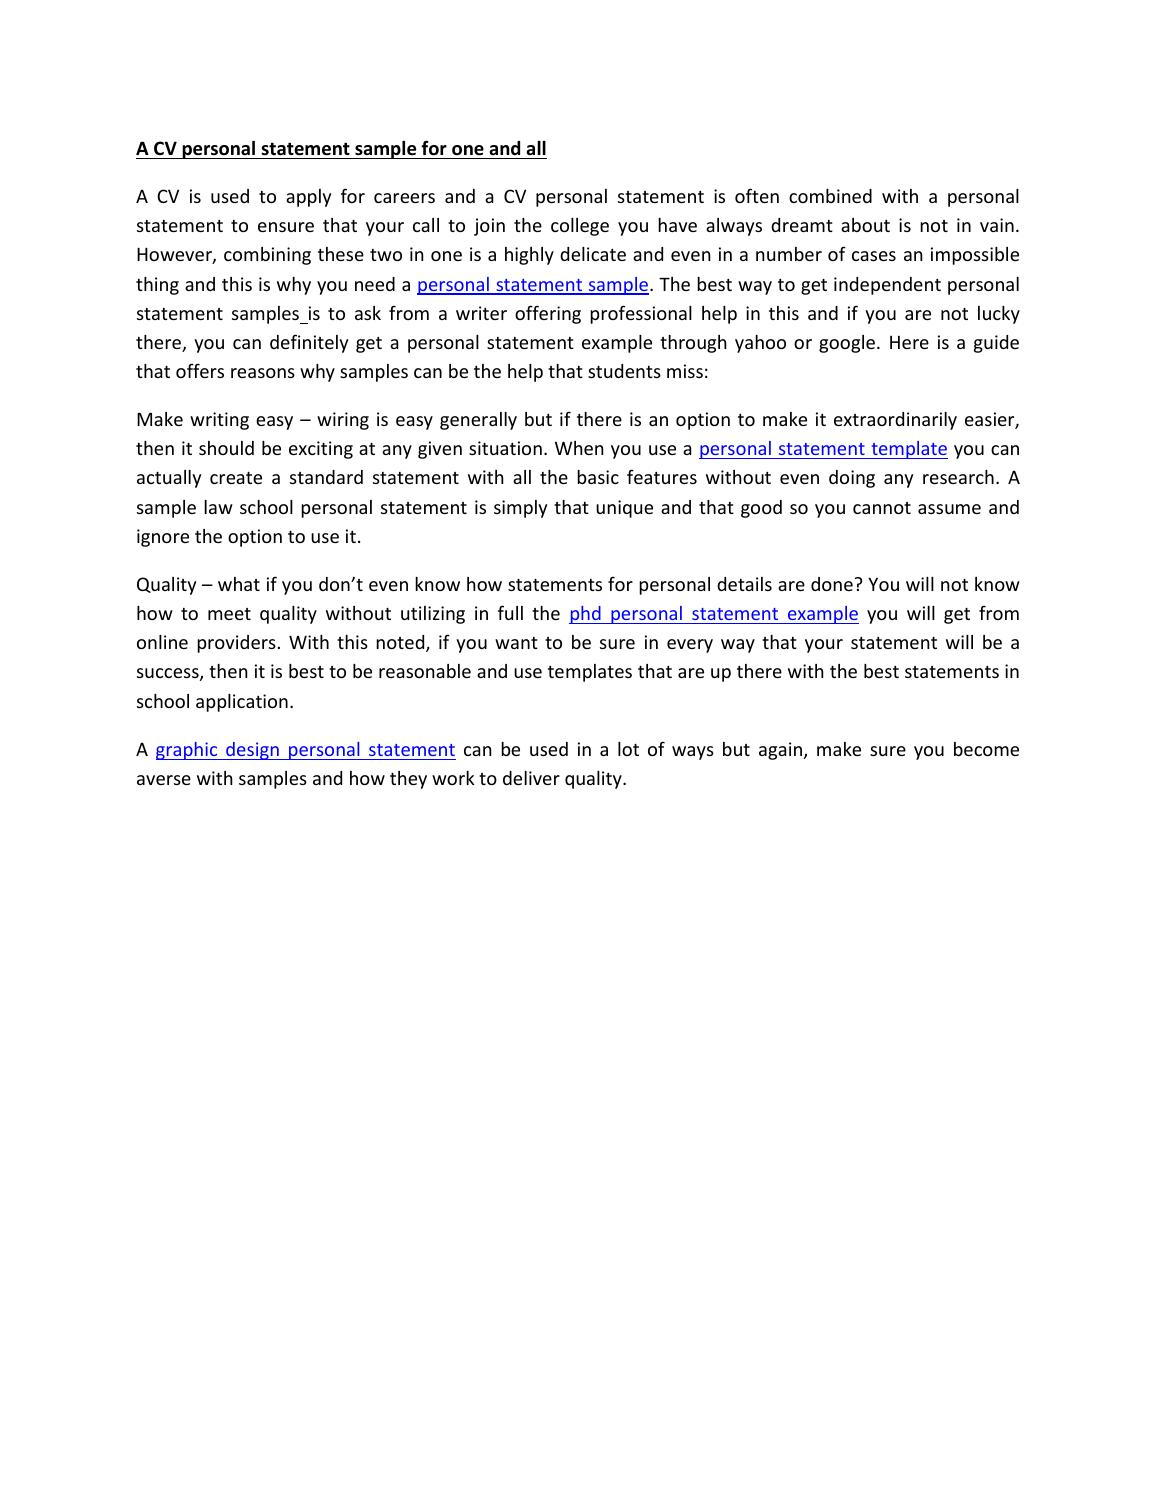 A Cv Personal Statement Sample For One And All By Adam Randolph Issuu